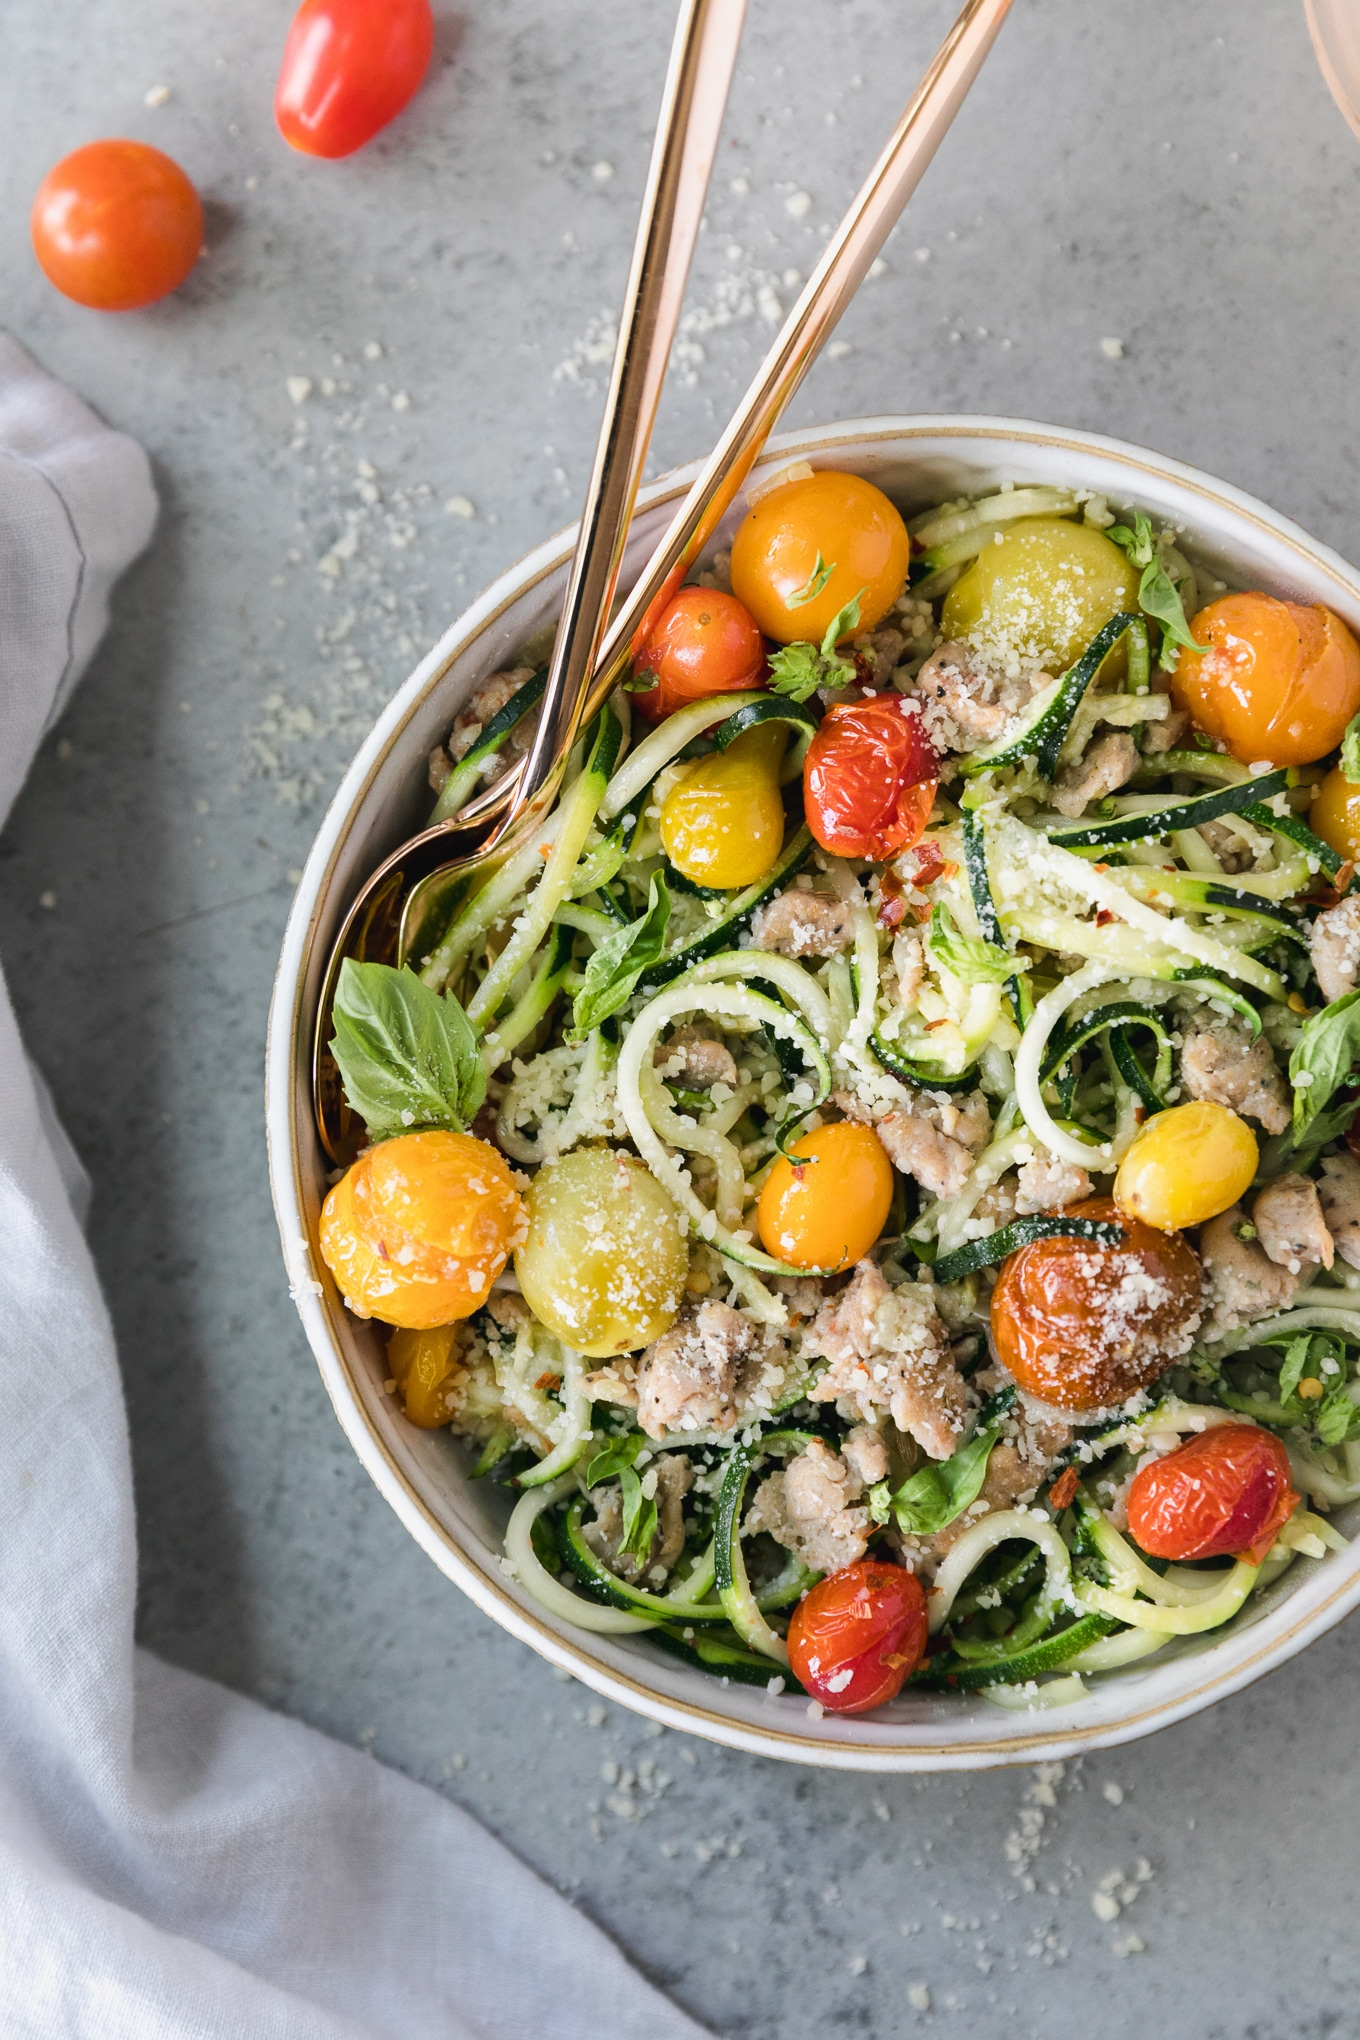 Overhead shot of zucchini noodles with roasted colorful baby heirloom tomatoes, fresh basil, and chicken sausage, with a gold fork and spoon resting in the bowl and a bluish grey napkin on the left side